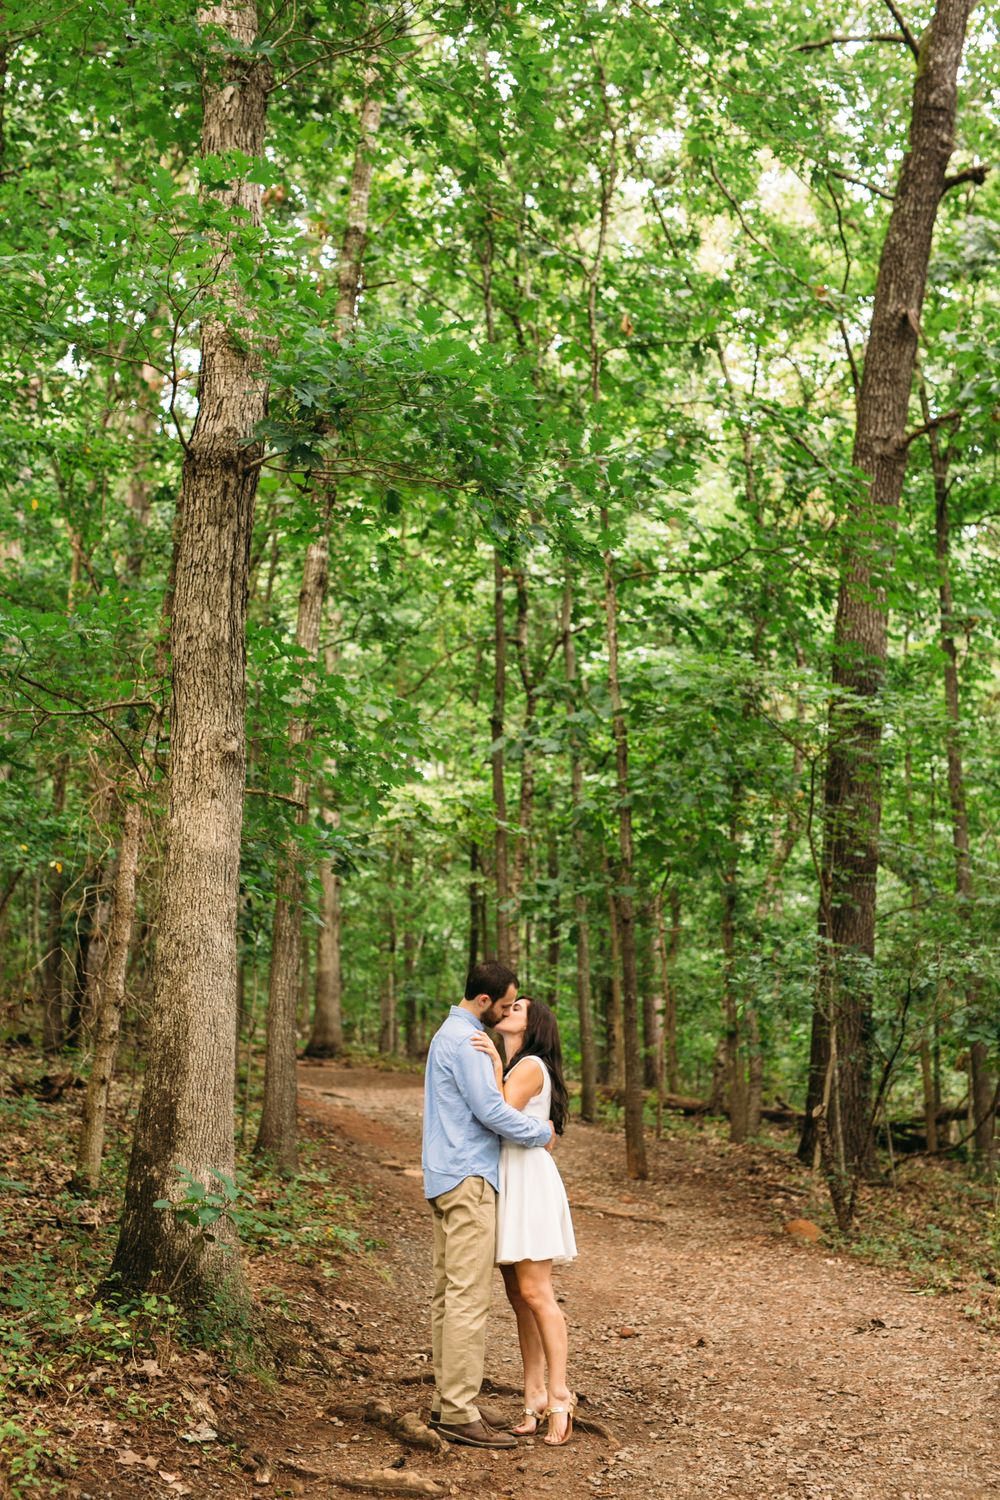 Ben & Julianne's Outdoor Engagement Session Kennesaw, Georgia  Julia Fenner - LeggyBird Photography